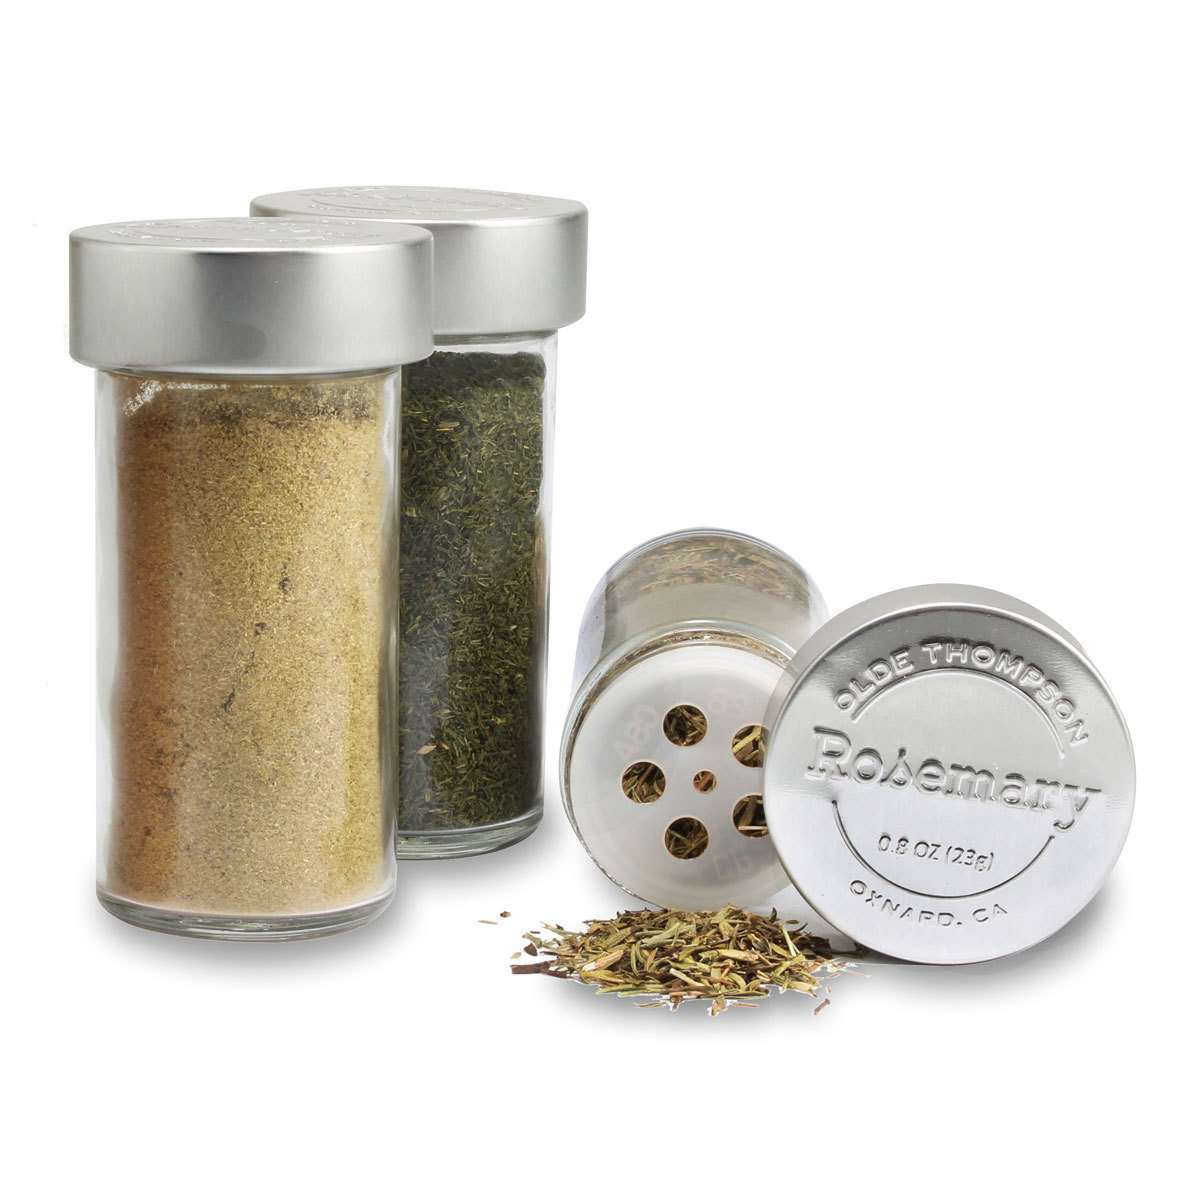 Olde Thompson Stainless Steel 20 Jar Spice Rack With SpicesOlde Thompson Stainless Steel 20 Jar Spice Rack With Spices